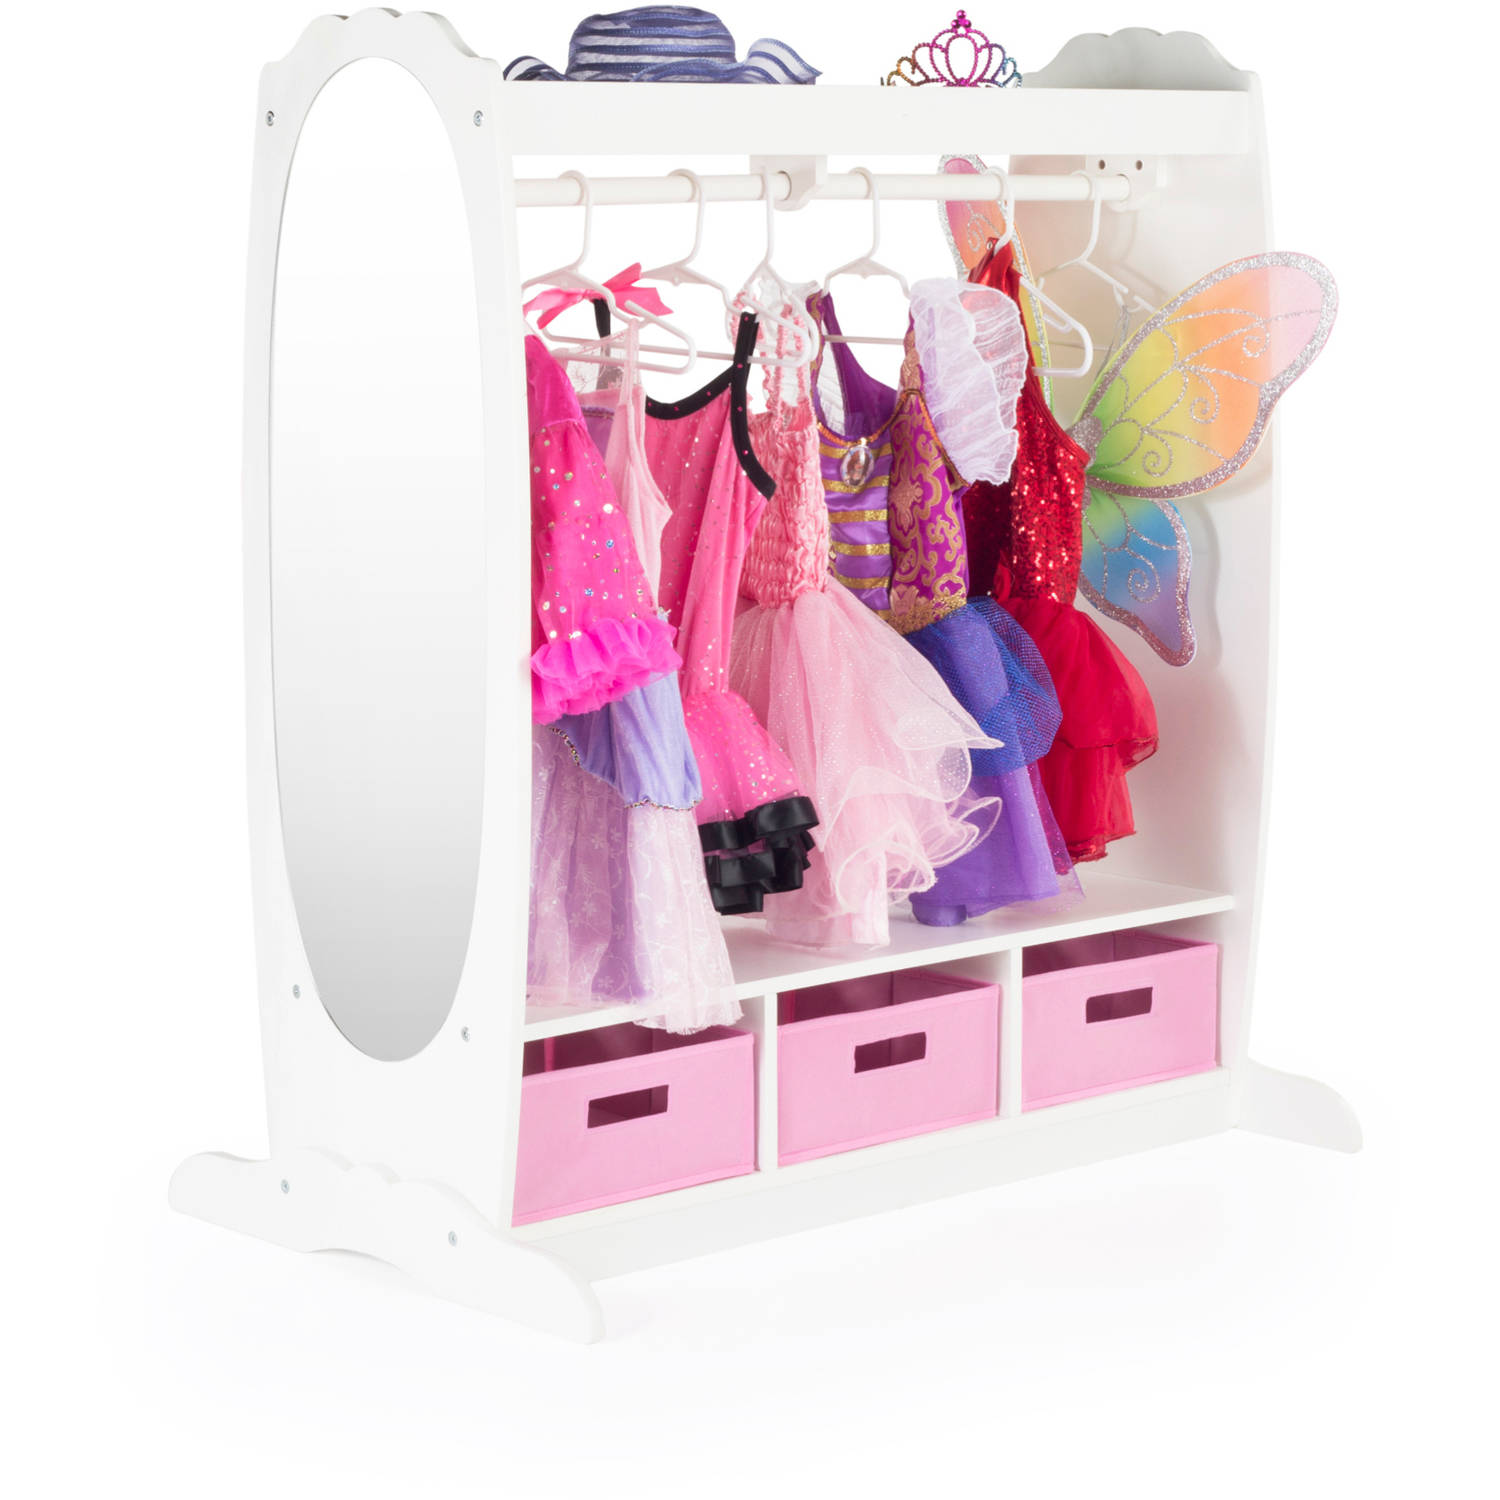 Guidecraft Dress Up Storage, Multiple Colors